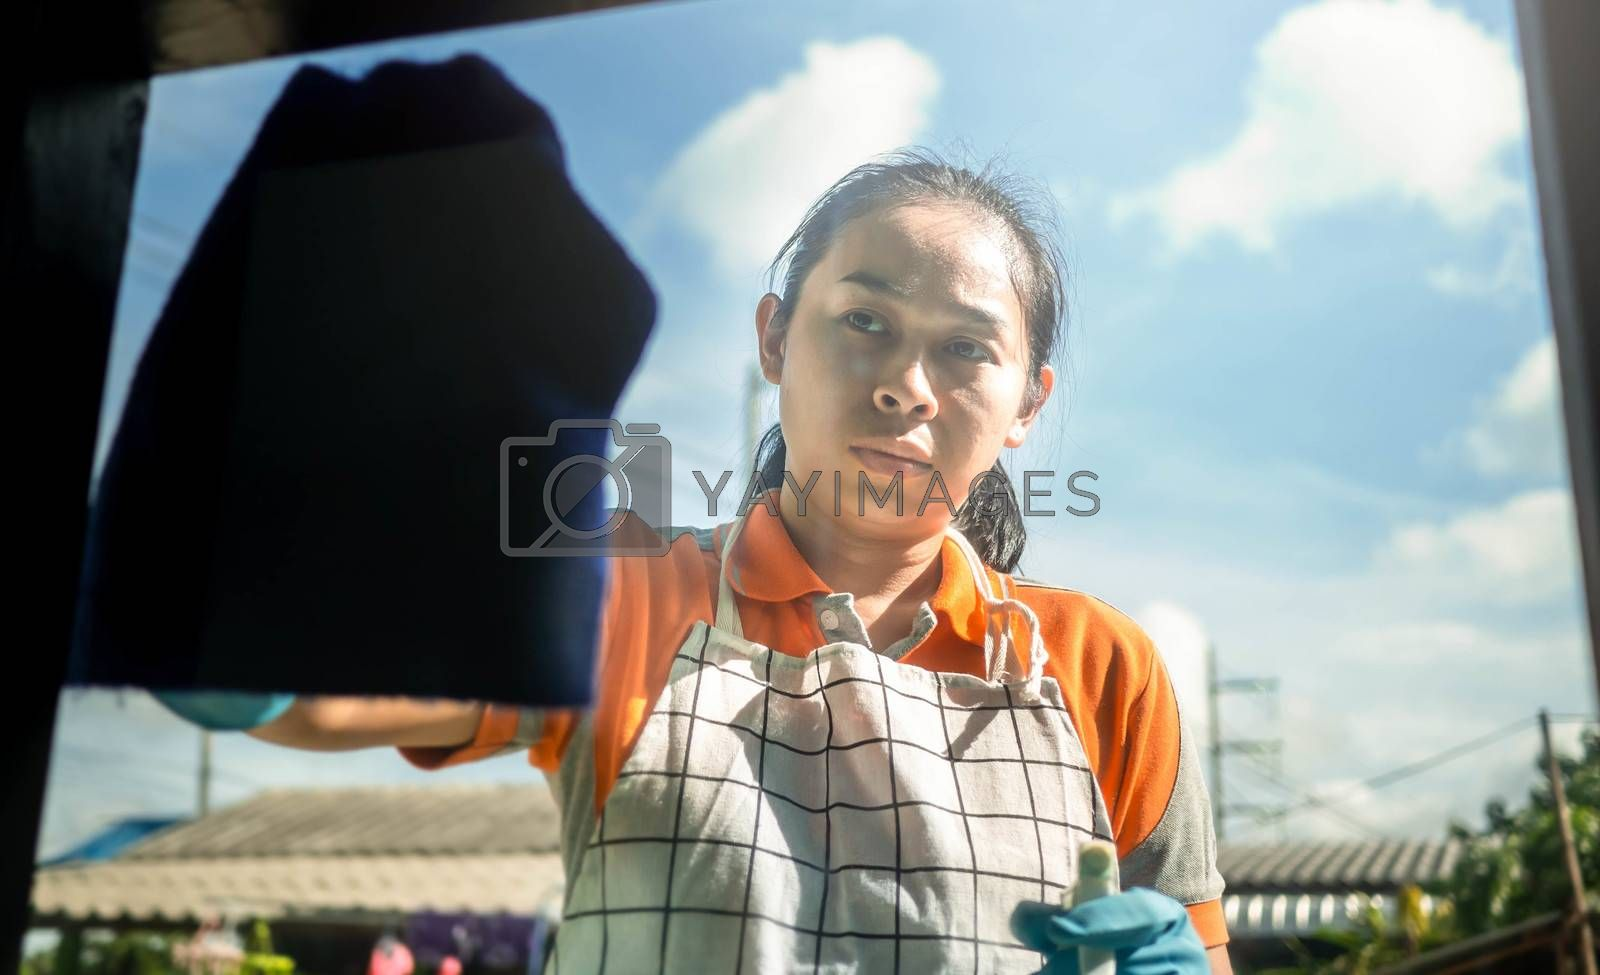 Woman wearing protective gloves cleaning window by spraying cleaning products and wiping with blue rag. Cleaning House concept.